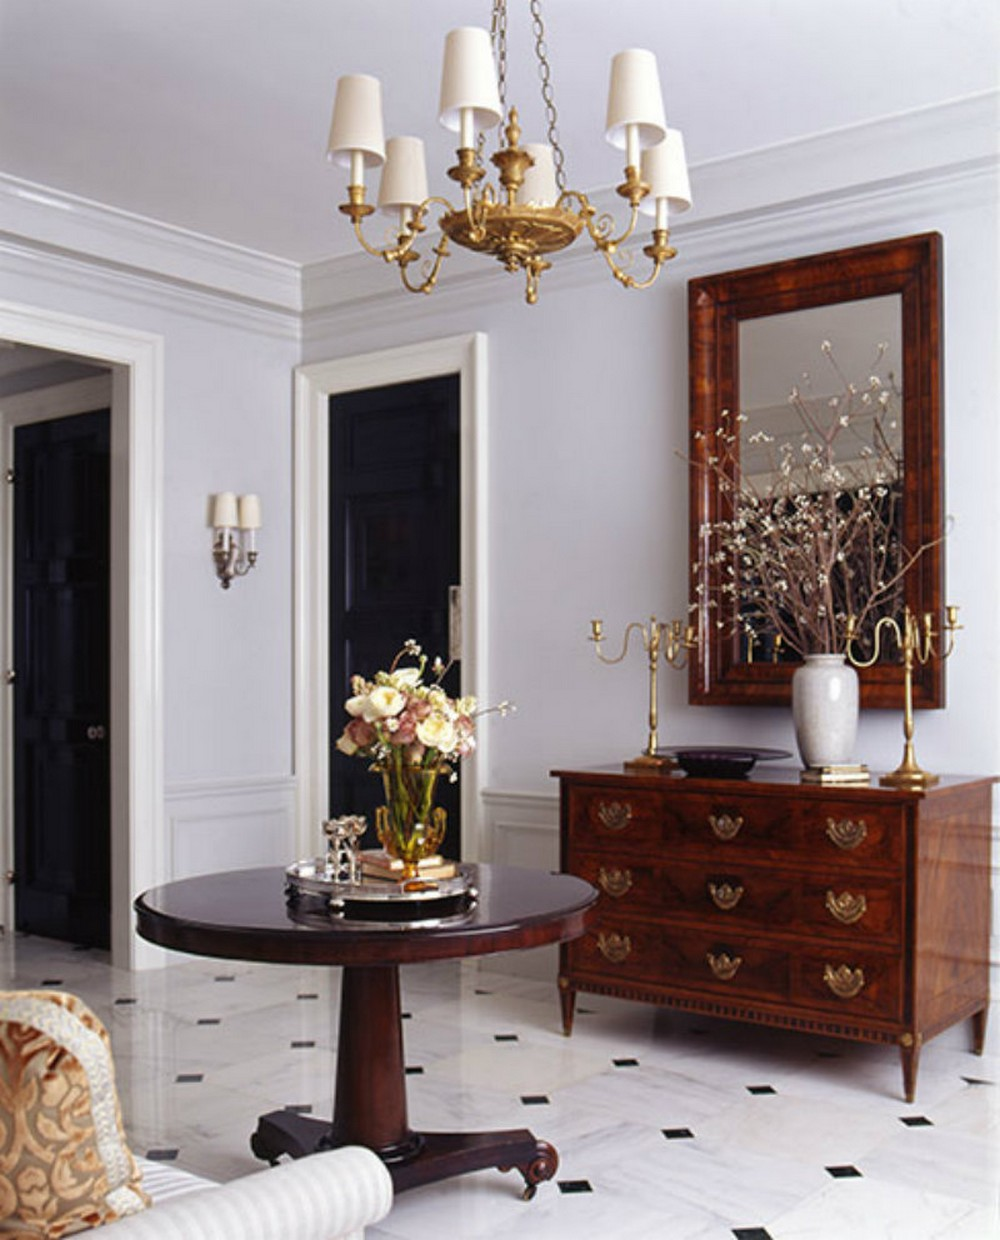 top interior designers Here are some top projects from New York's Top Interior Designers ThomasOBrien3